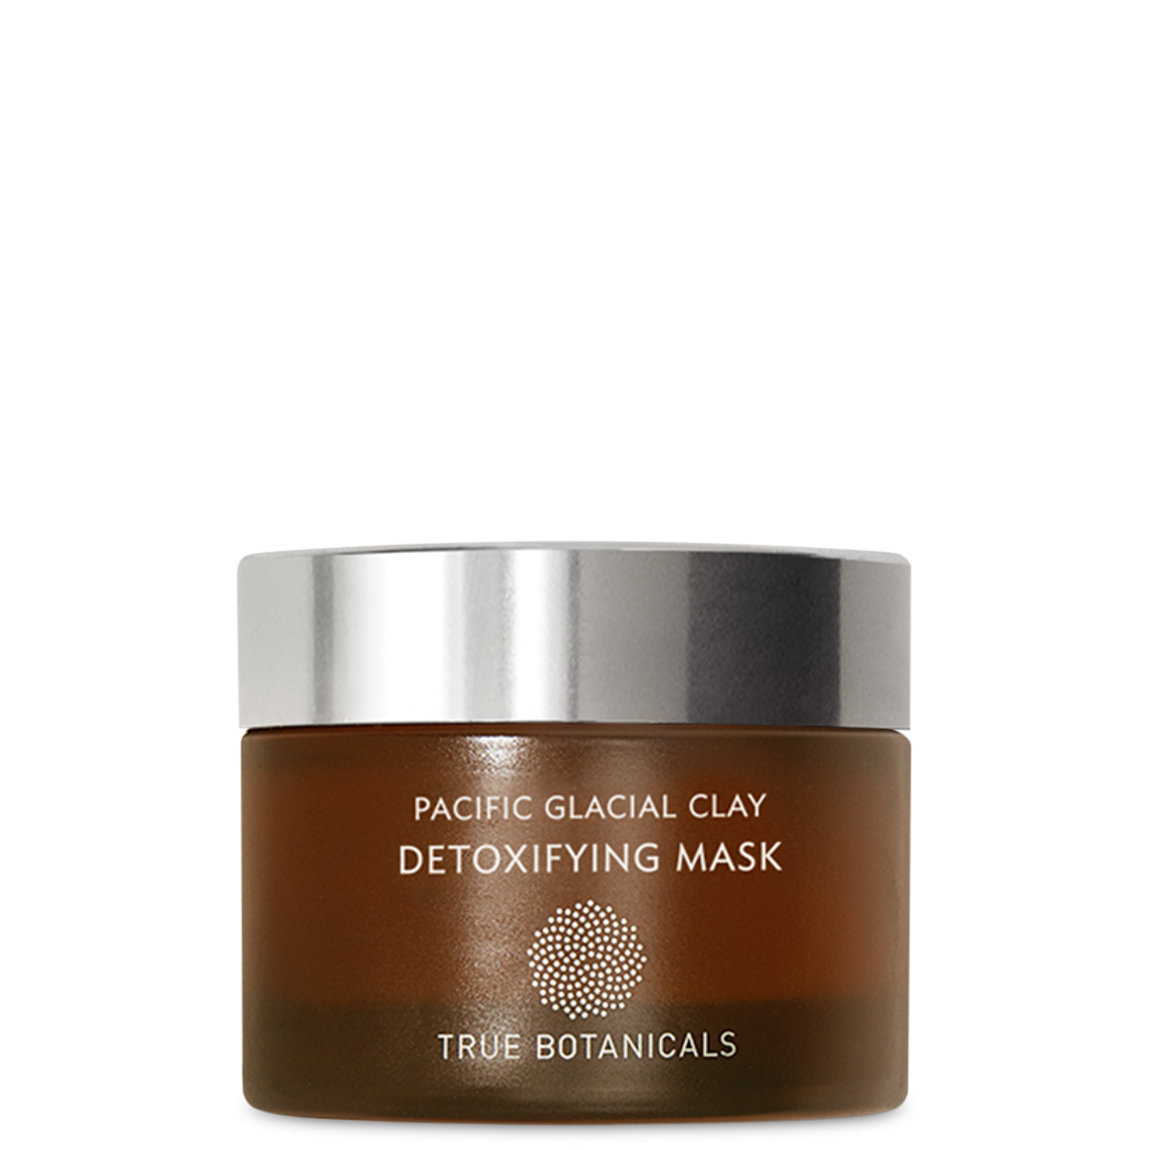 True Botanicals Pacific Glacial Clay Detoxifying Mask alternative view 1 - product swatch.